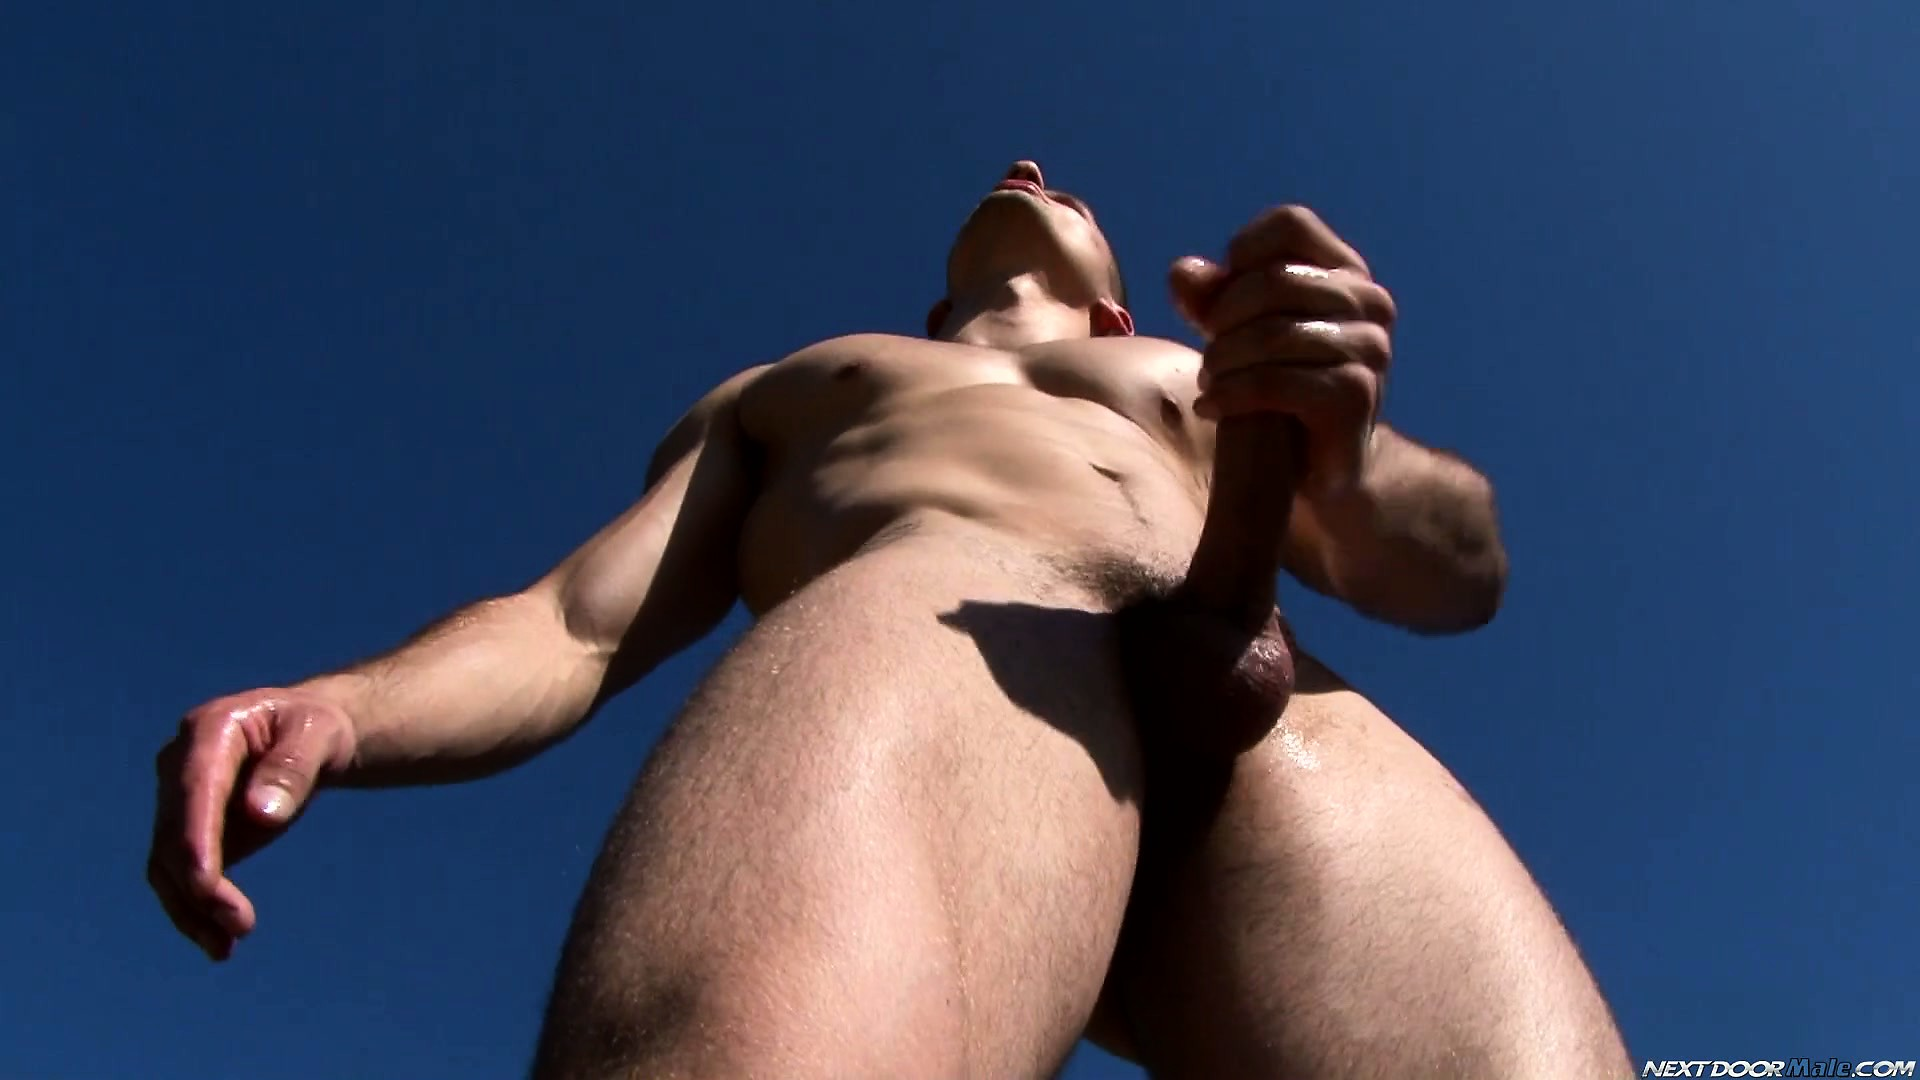 Porno Video of Muscular And Aroused Jack Is Having Fun With His Own Butt Hole And Long Prick